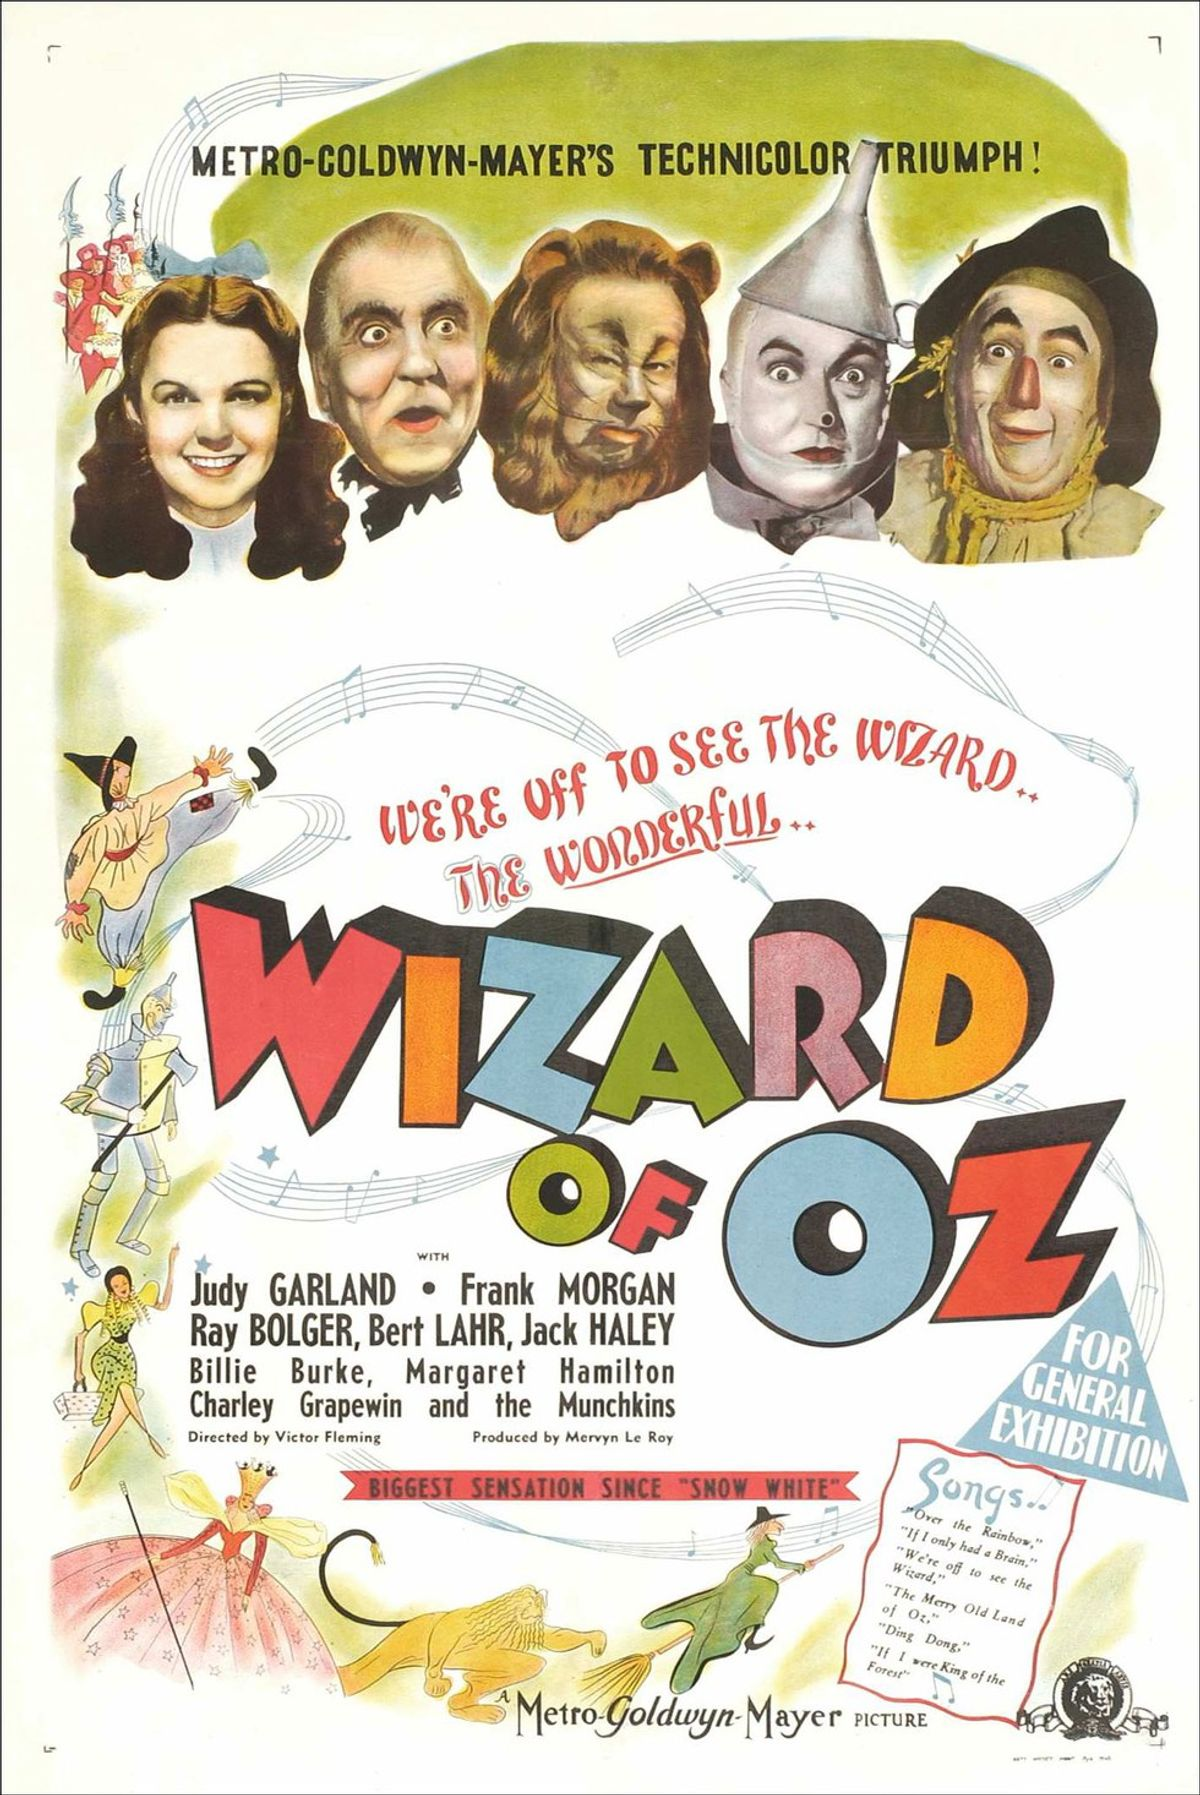 7 Life Lessons We Learned From 'The Wizard Of Oz'